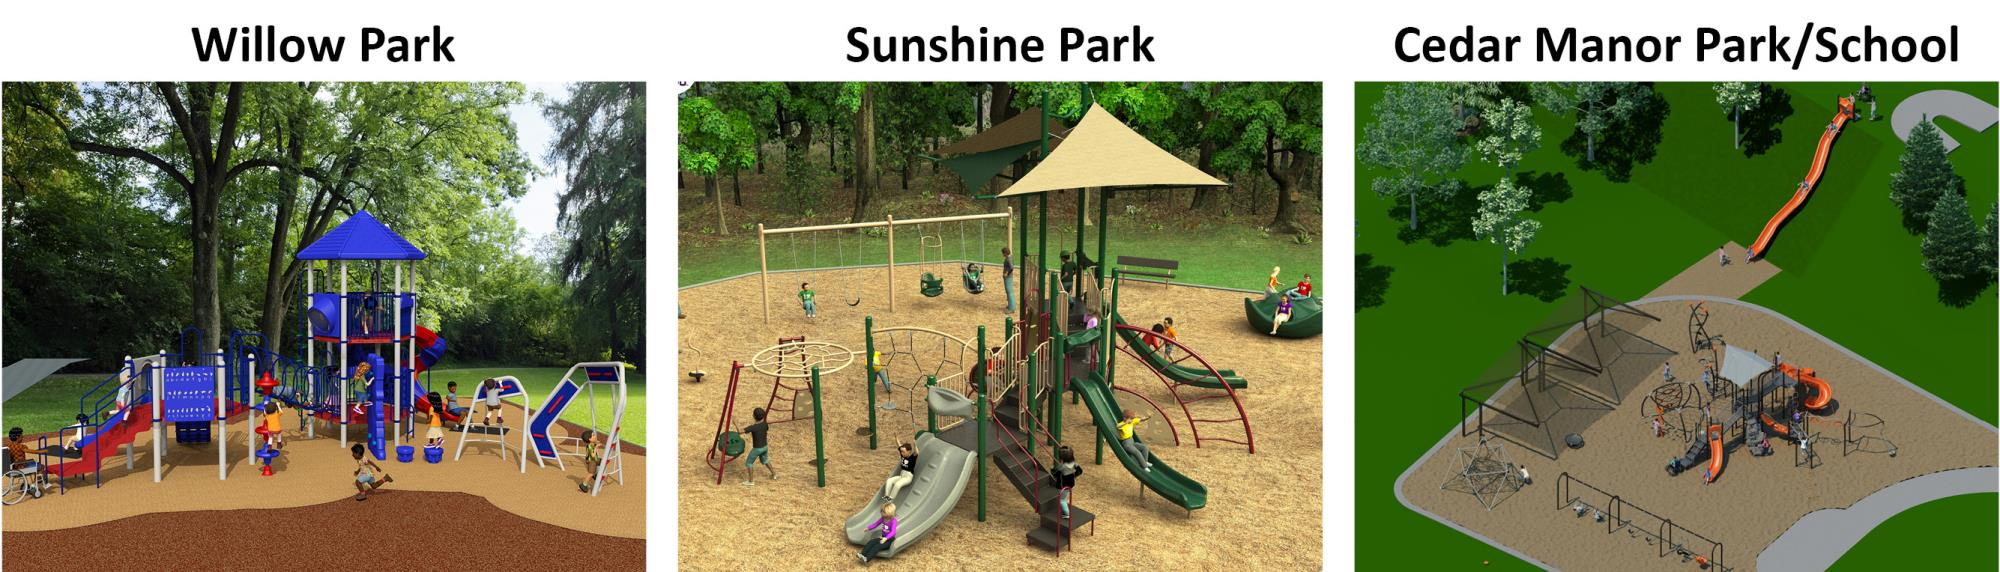 2019-new-park-playgrounds-willow-sunshine-cedar-manor2